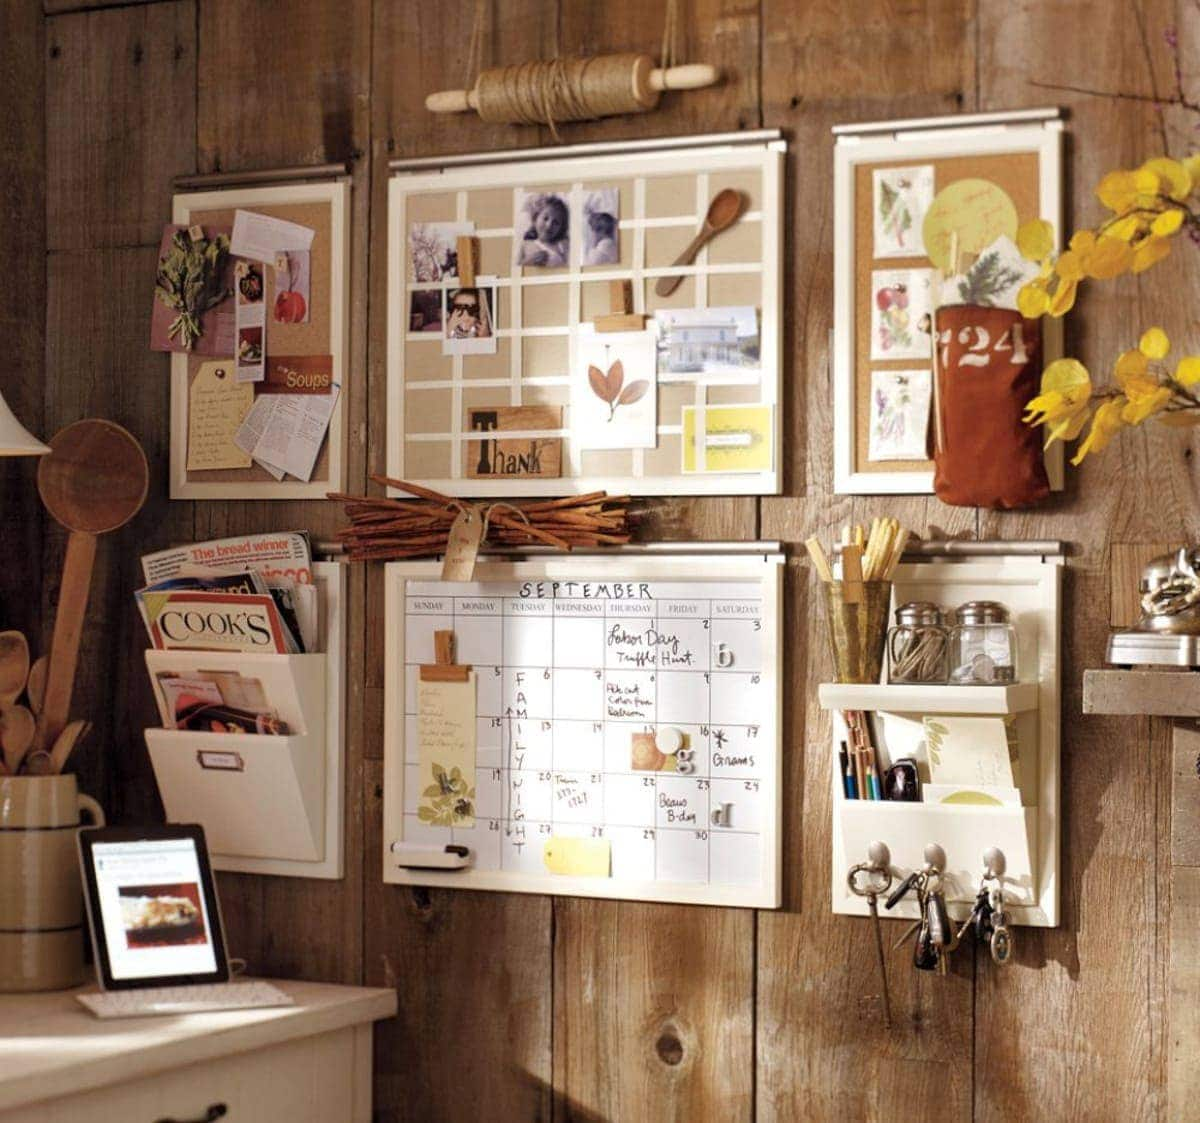 pottery barn rustic home office with cork boards and mood board plus white board calendar